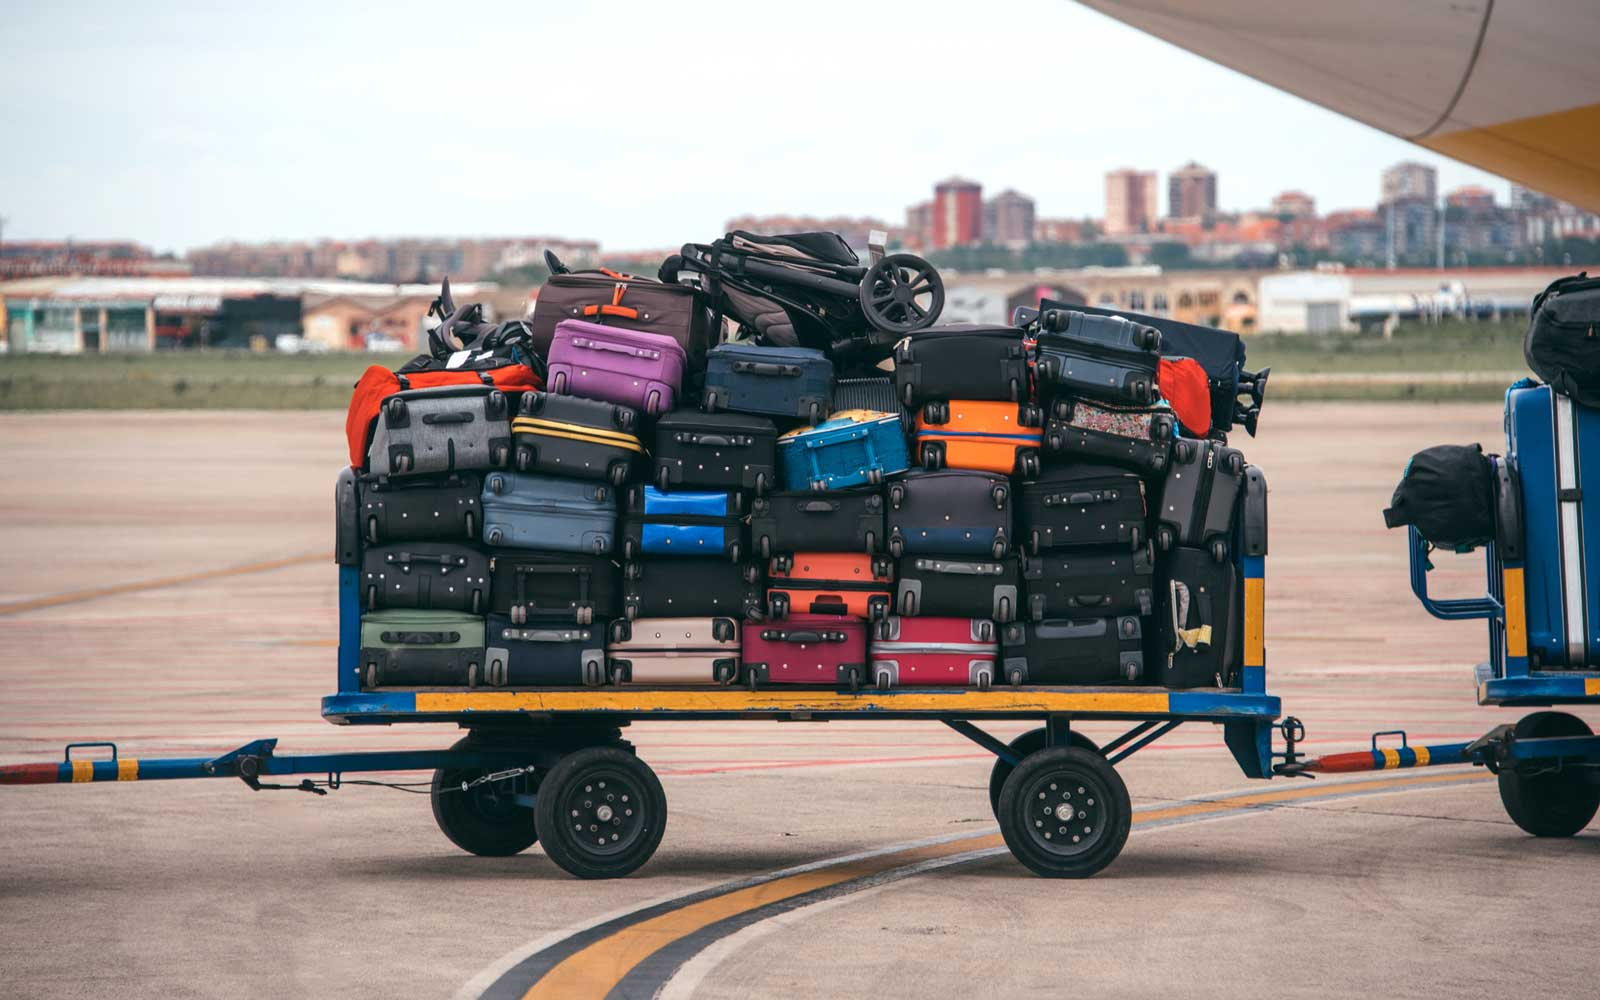 Luggage cart at the airport